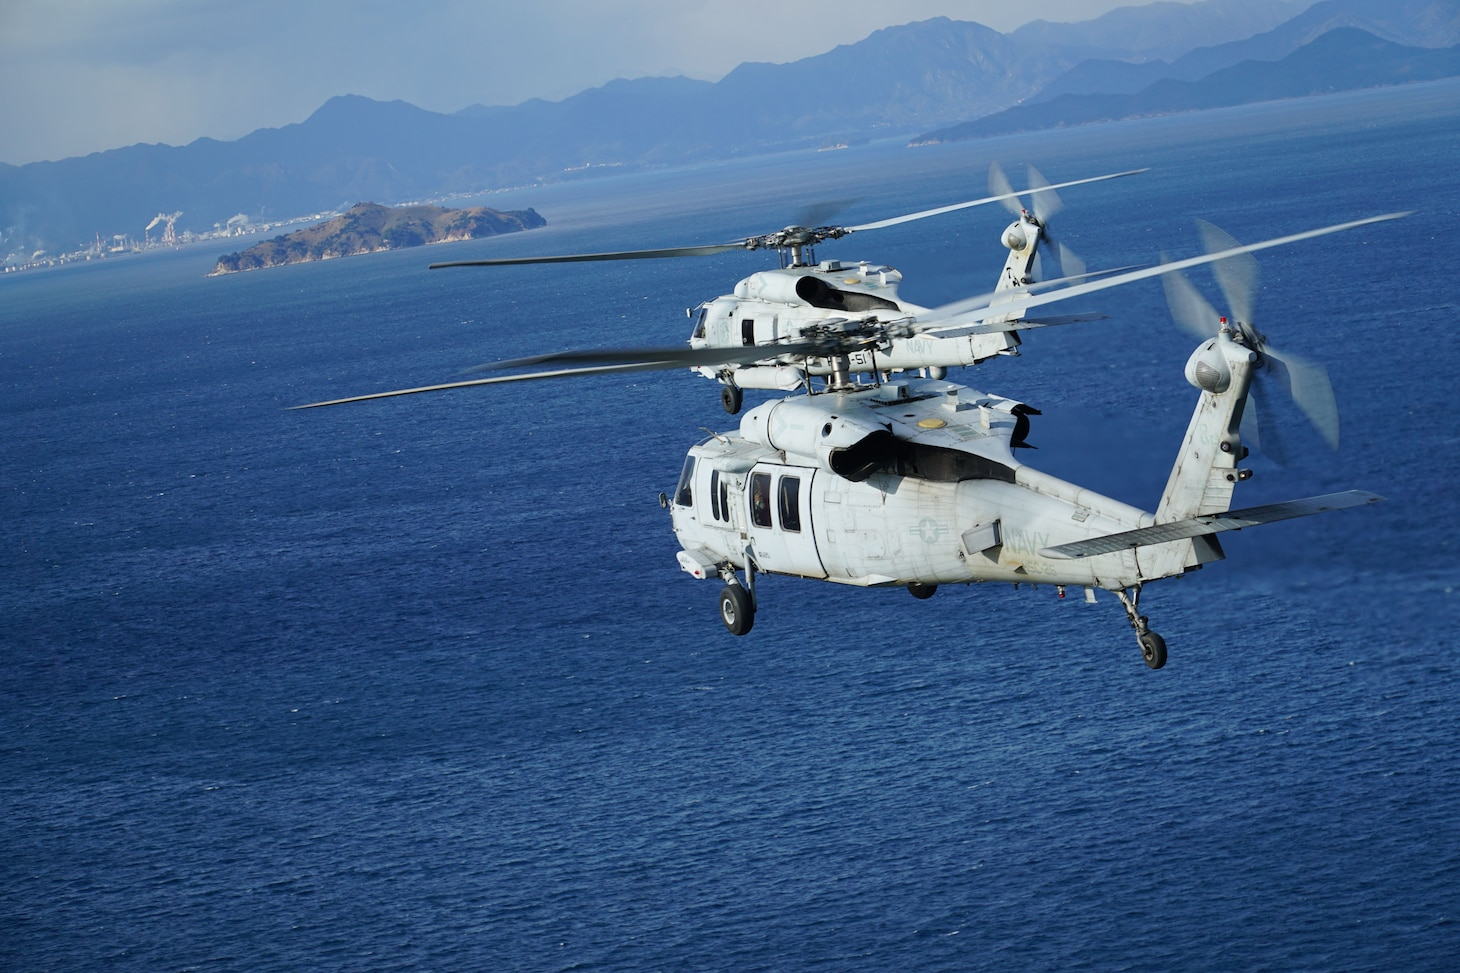 U.S. Navy MH-60R and MH-60S Seahawk helicopters, assigned to Helicopter Maritime Strike Squadron (HSM) 51 and Helicopter Sea Combat Squadron (HSC) 25 rendezvous off the coast of Hiroshima